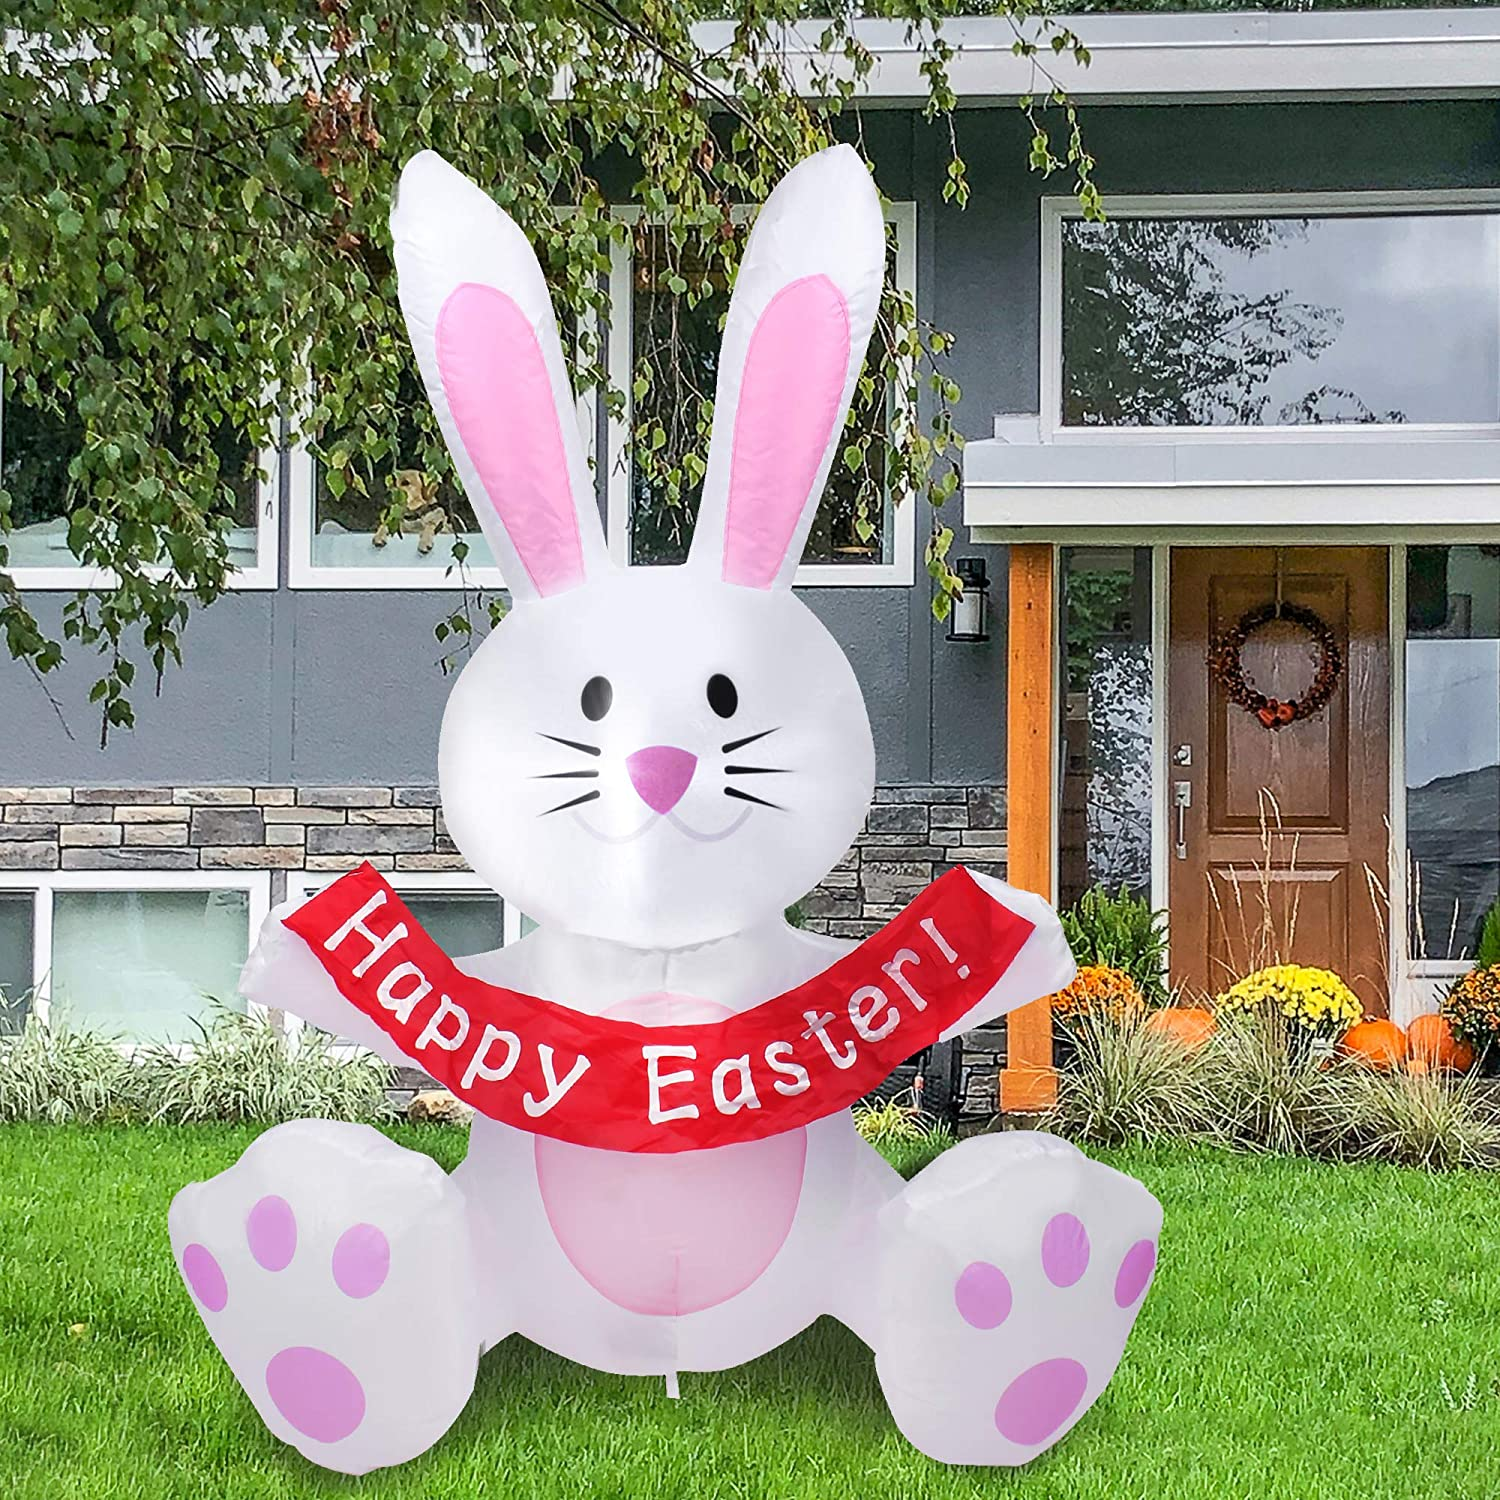 BEBEKULA 3.5 FT Lighted Easter Inflatable Happy Bunny Sitting, Holding Happy Easter Banner Blow up Yard Lawn Inflatables Home Family Outside Decor